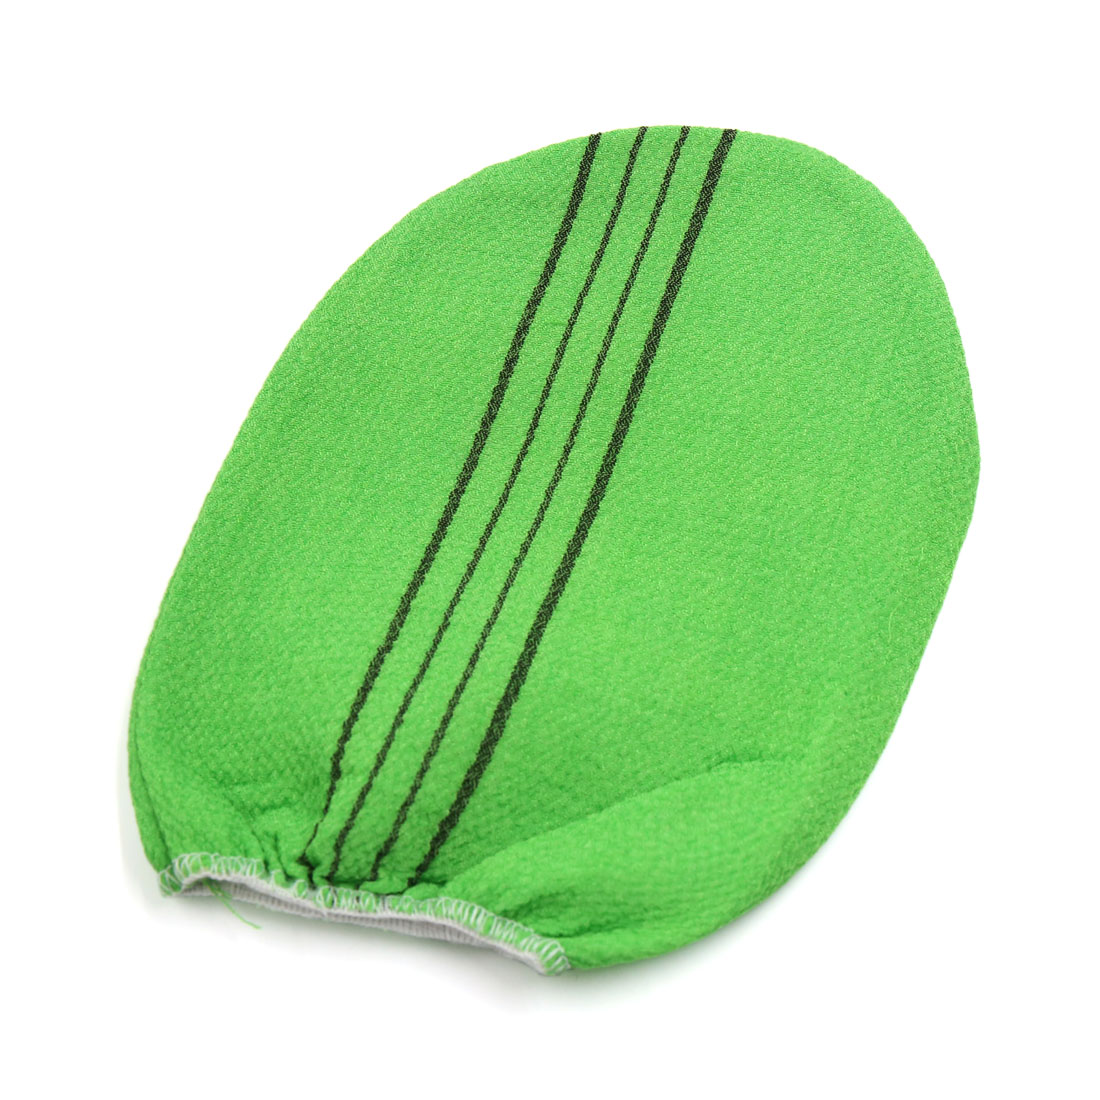 Green Bath Shower Sauna Dead Skin Exfoliating Massage Mitt Scrubber Glove